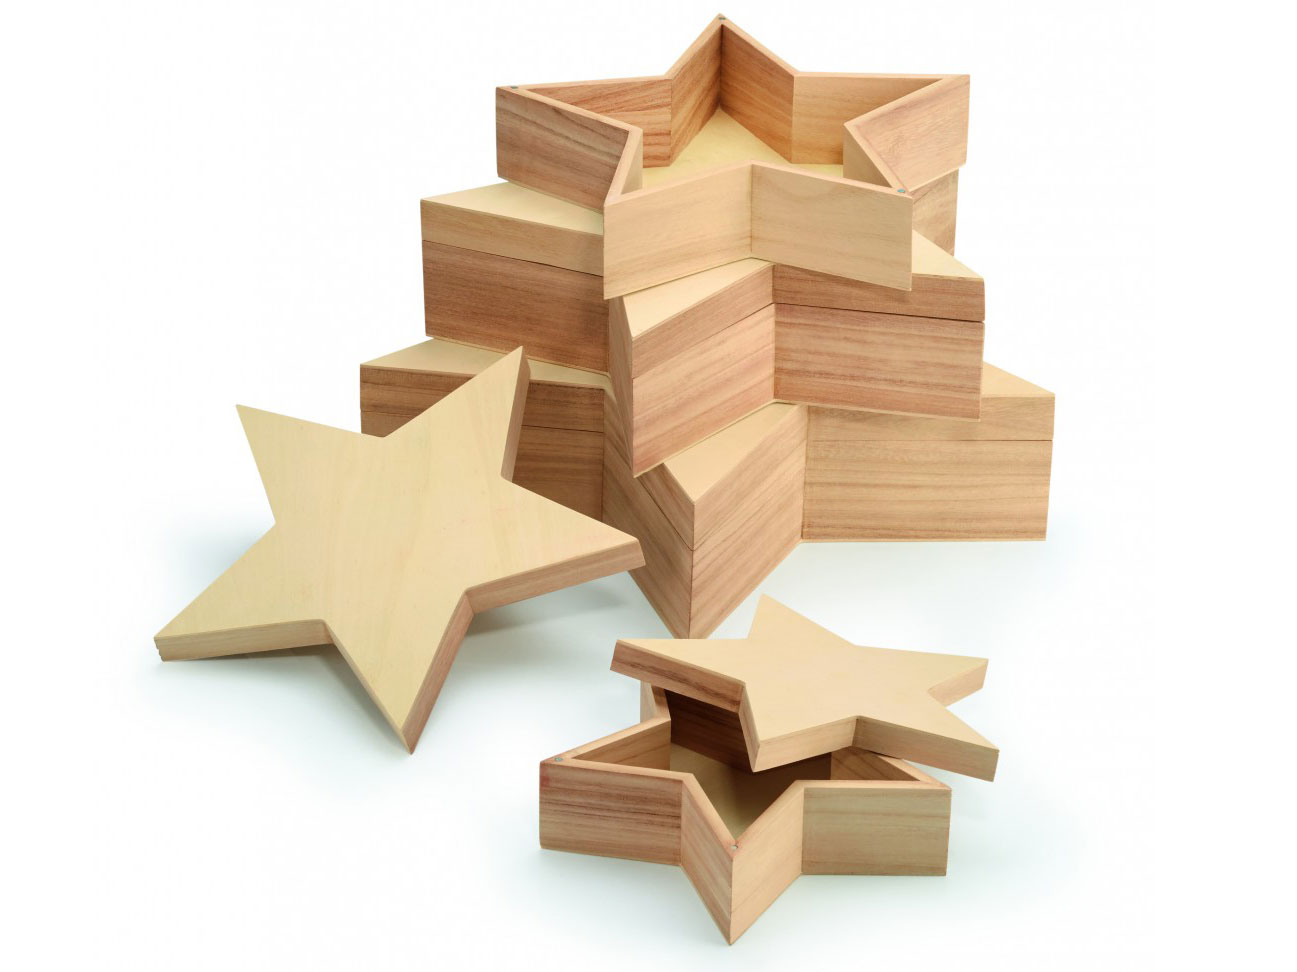 Philippi 4-teiliges Box-Set Big Star aus Holz